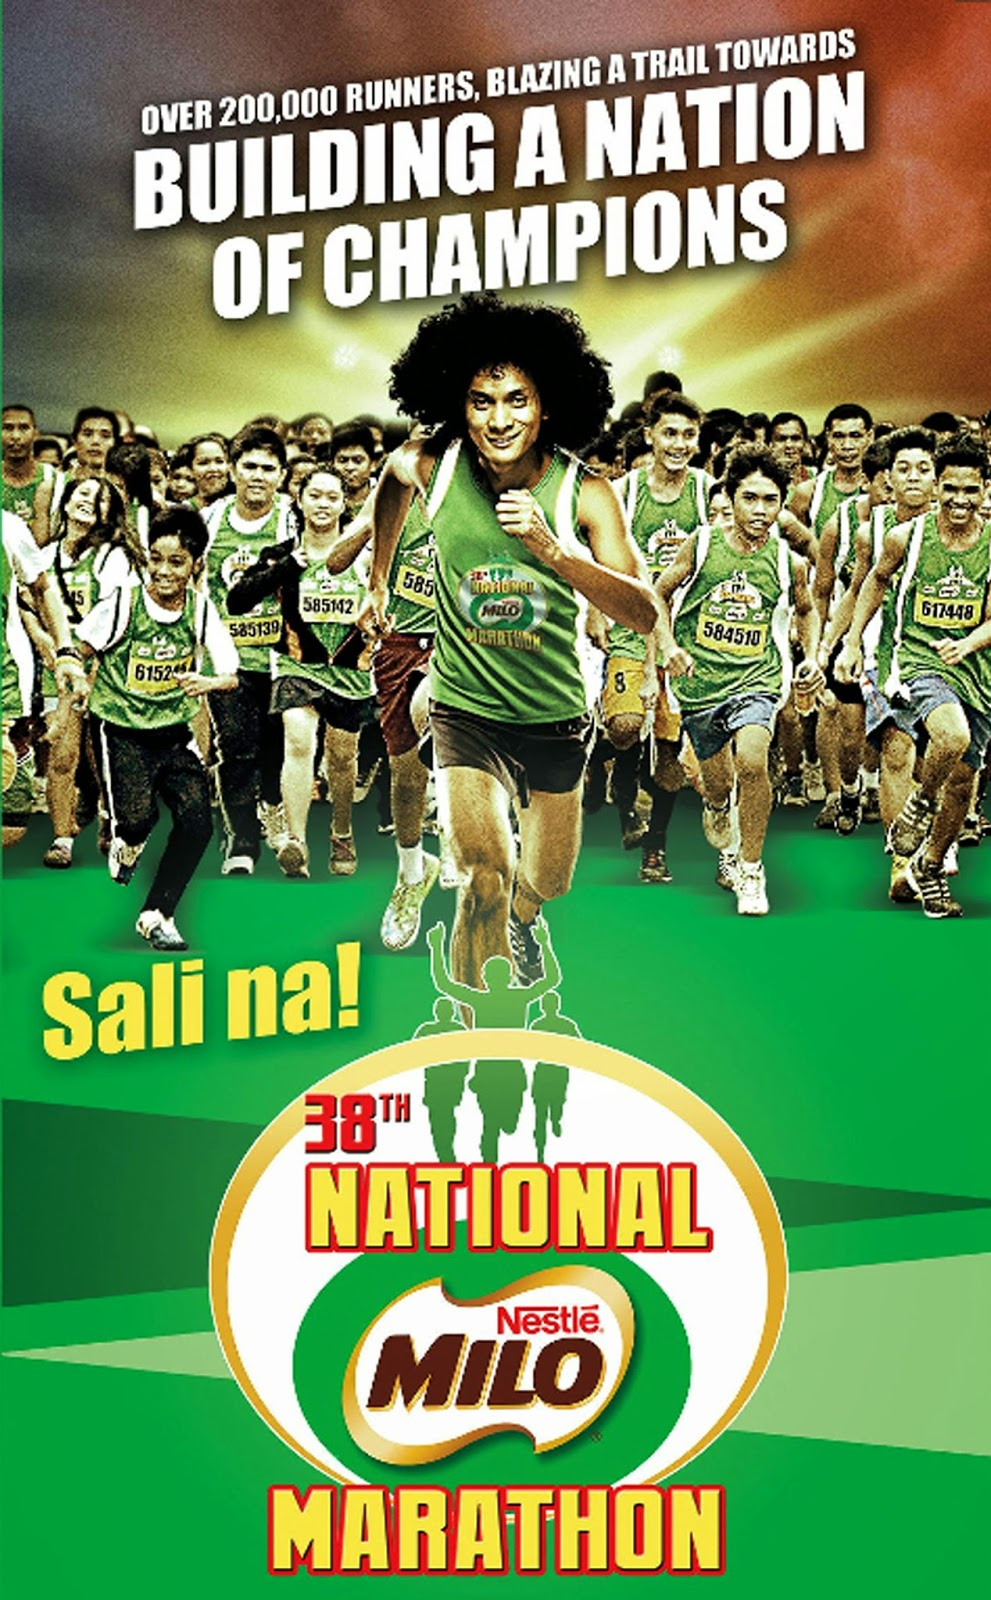 38th-milo-marathon-2014-poster-cebu